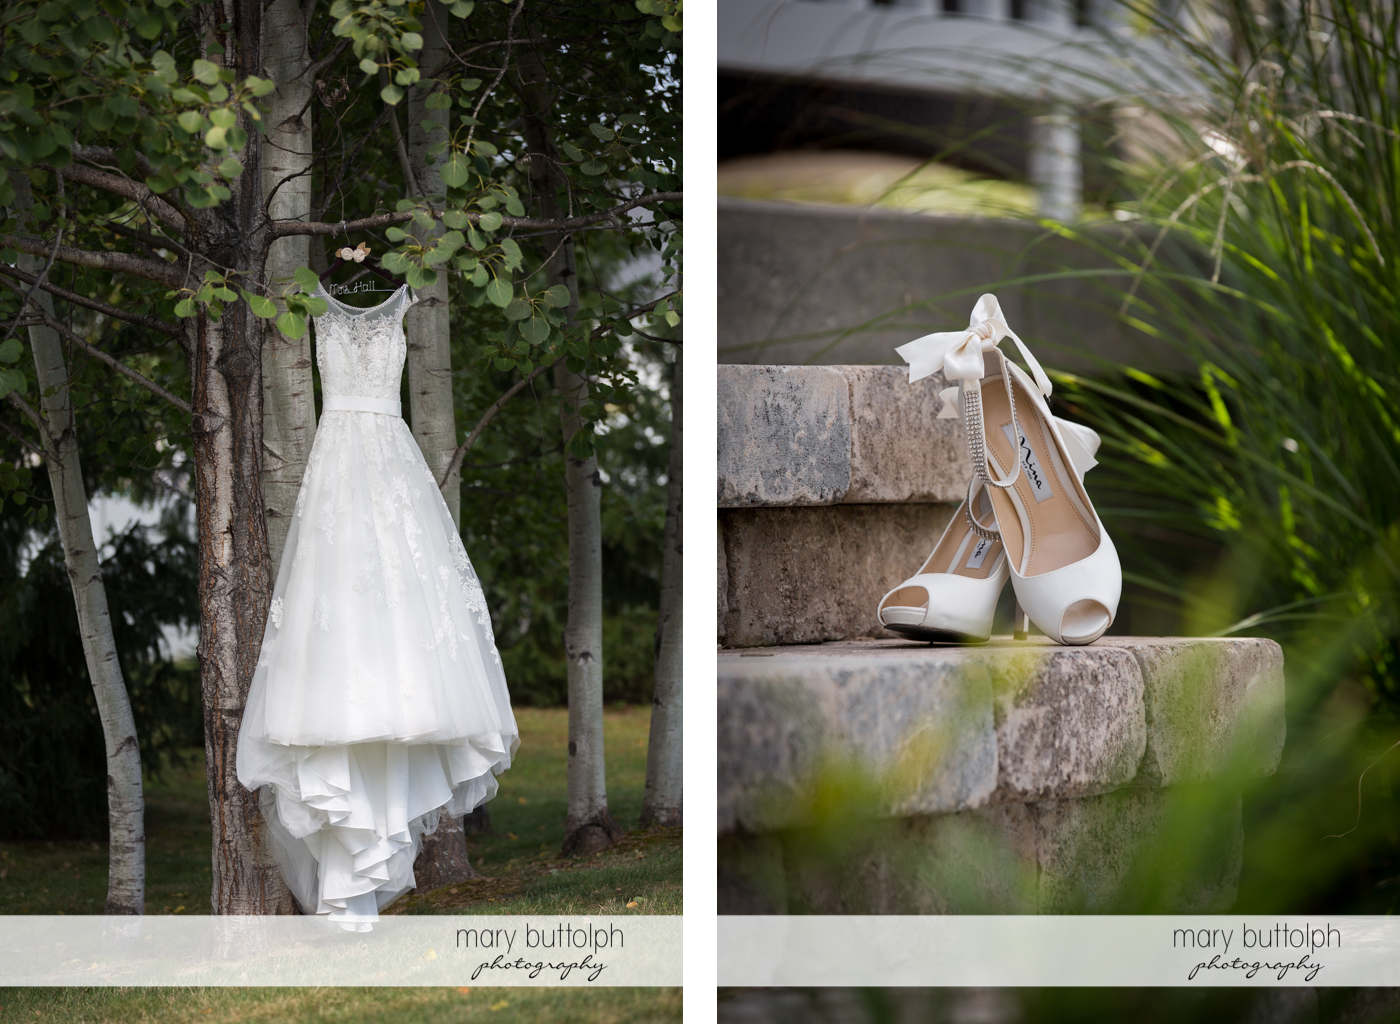 Bride's wedding dress hangs from a tree while her wedding shoes rest on the stone steps at Anyela's Vineyards Wedding